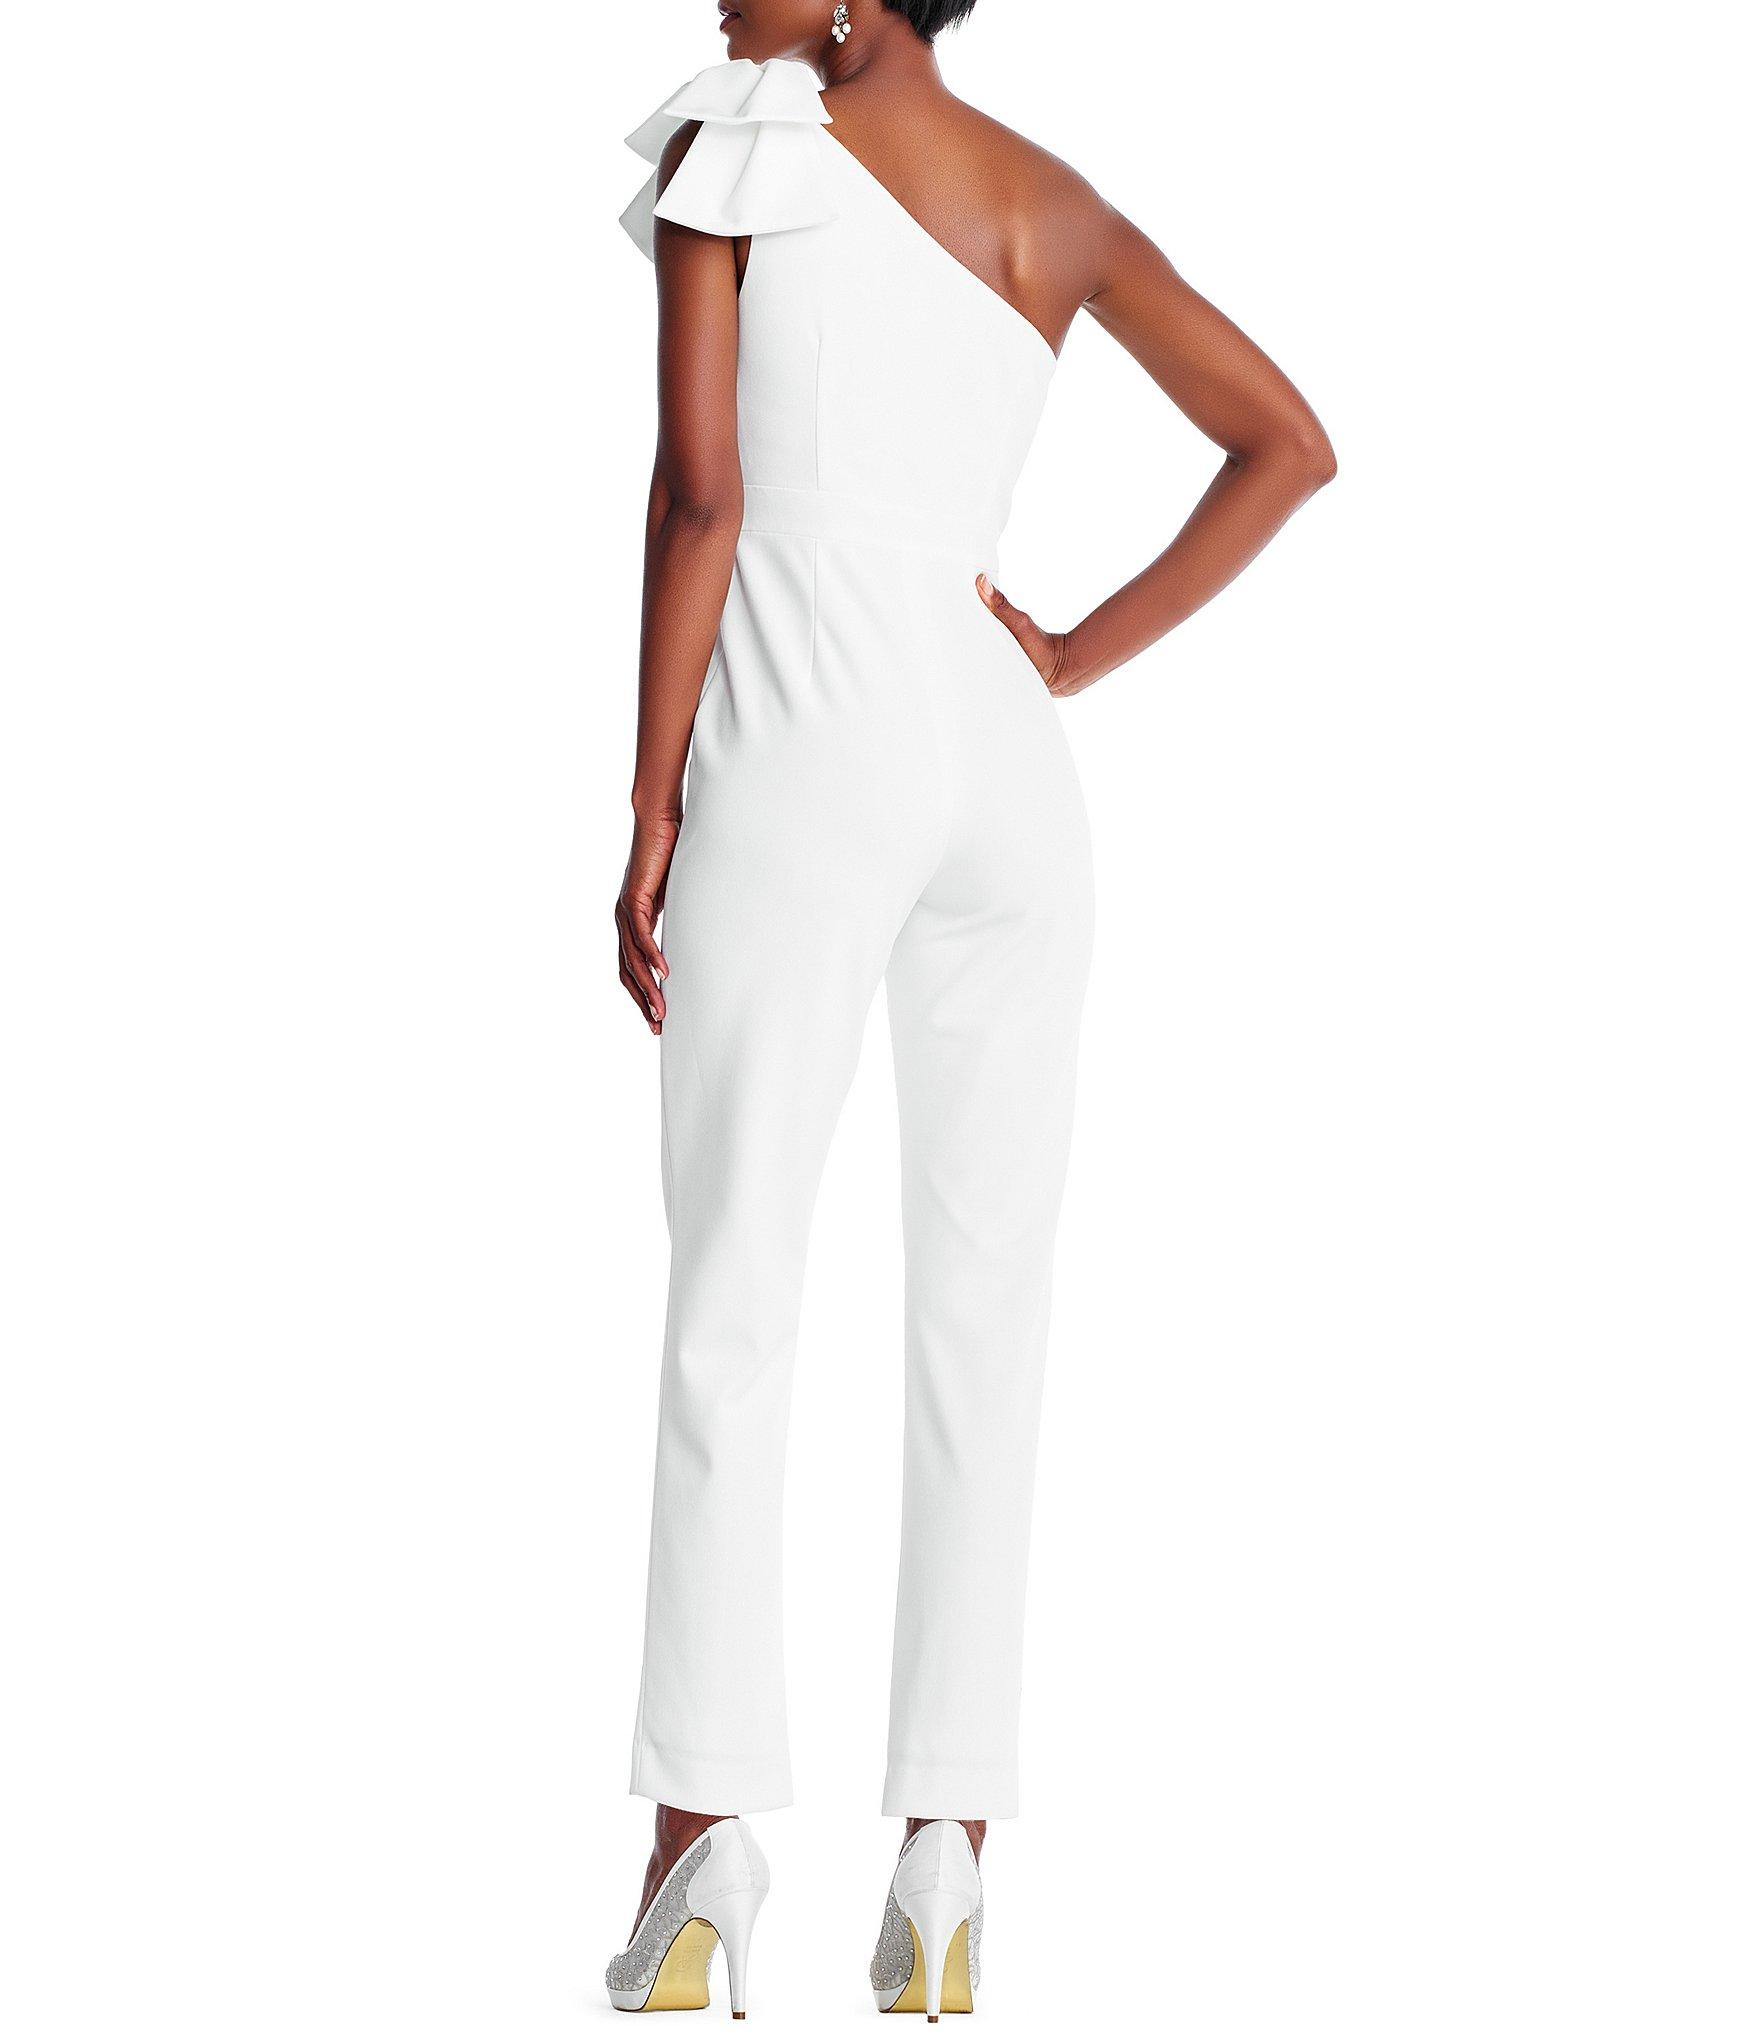 6547655e543 Adrianna Papell - White Petite Size One-shoulder Bow Jumpsuit - Lyst. View  fullscreen